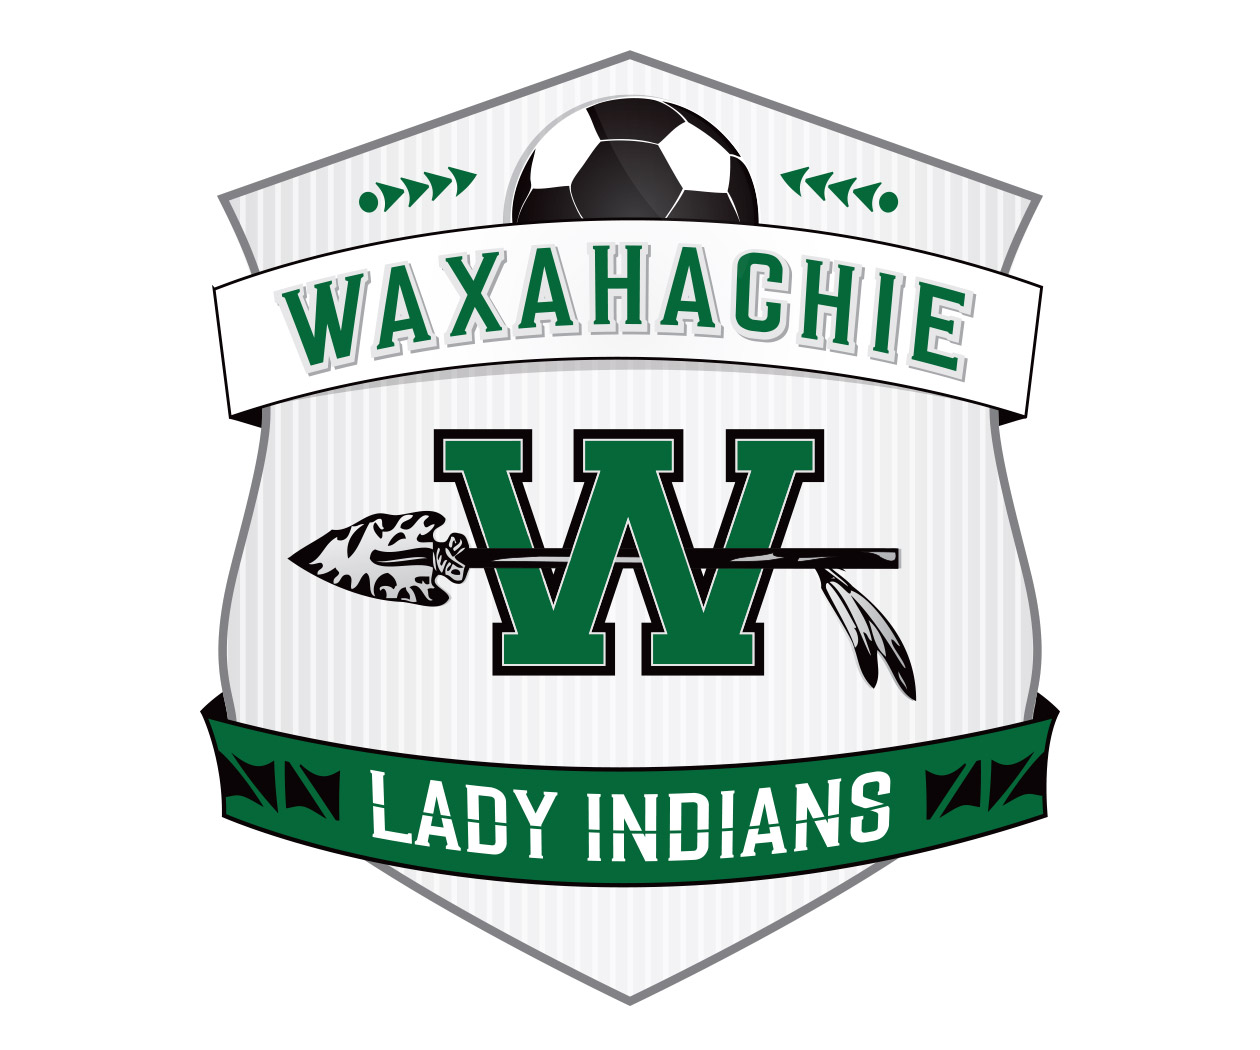 custom soccer logo design for the waxahachie lady indians soccer by jordan fretz design